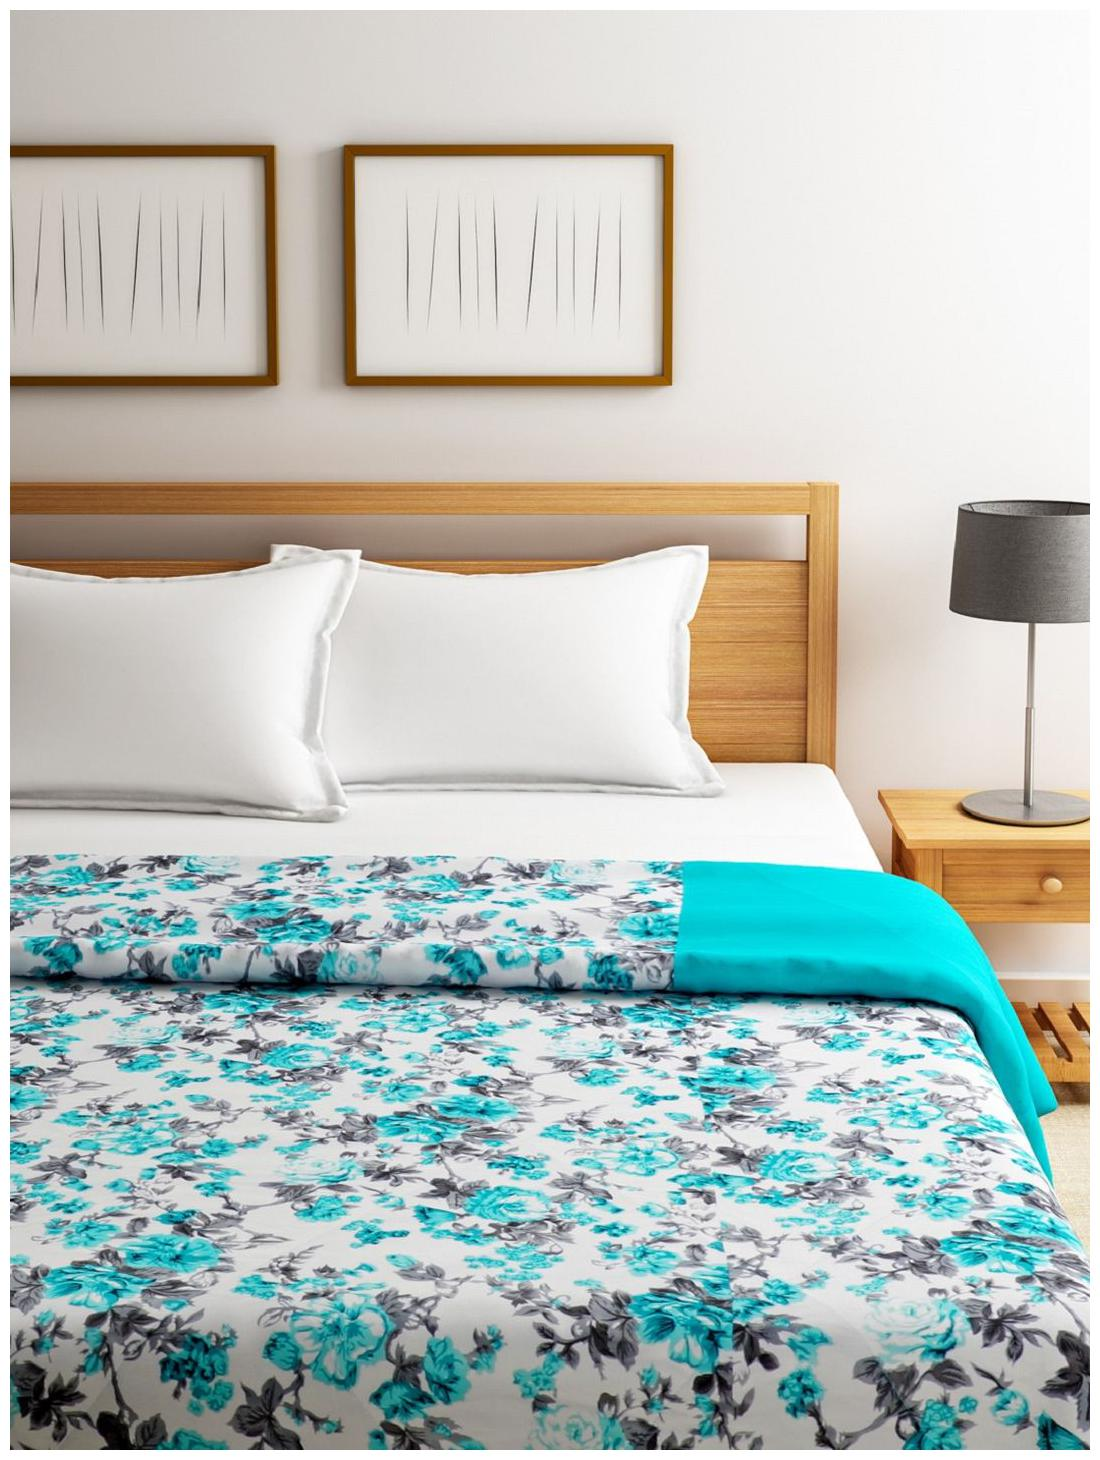 https://assetscdn1.paytm.com/images/catalog/product/H/HO/HOMSWAYAM-TEAL-SWAY191C91CDFBB/1563039391099_0..jpg